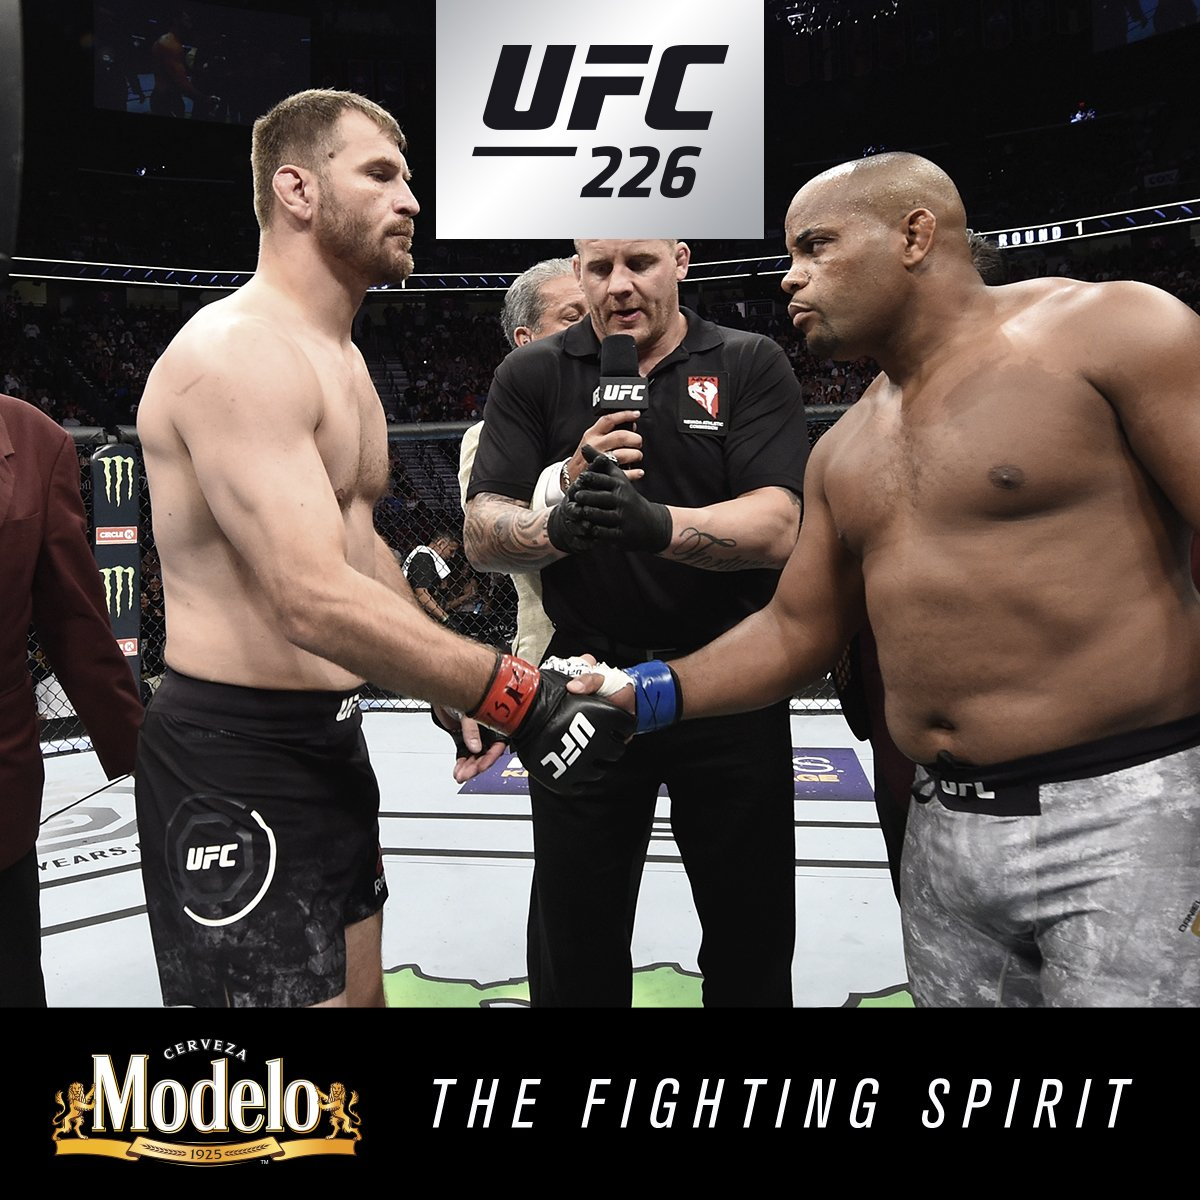 Immortality. @DC_MMAs #FightingSpirit was on display as he made history Saturday night. @ModeloUSA #UFC226